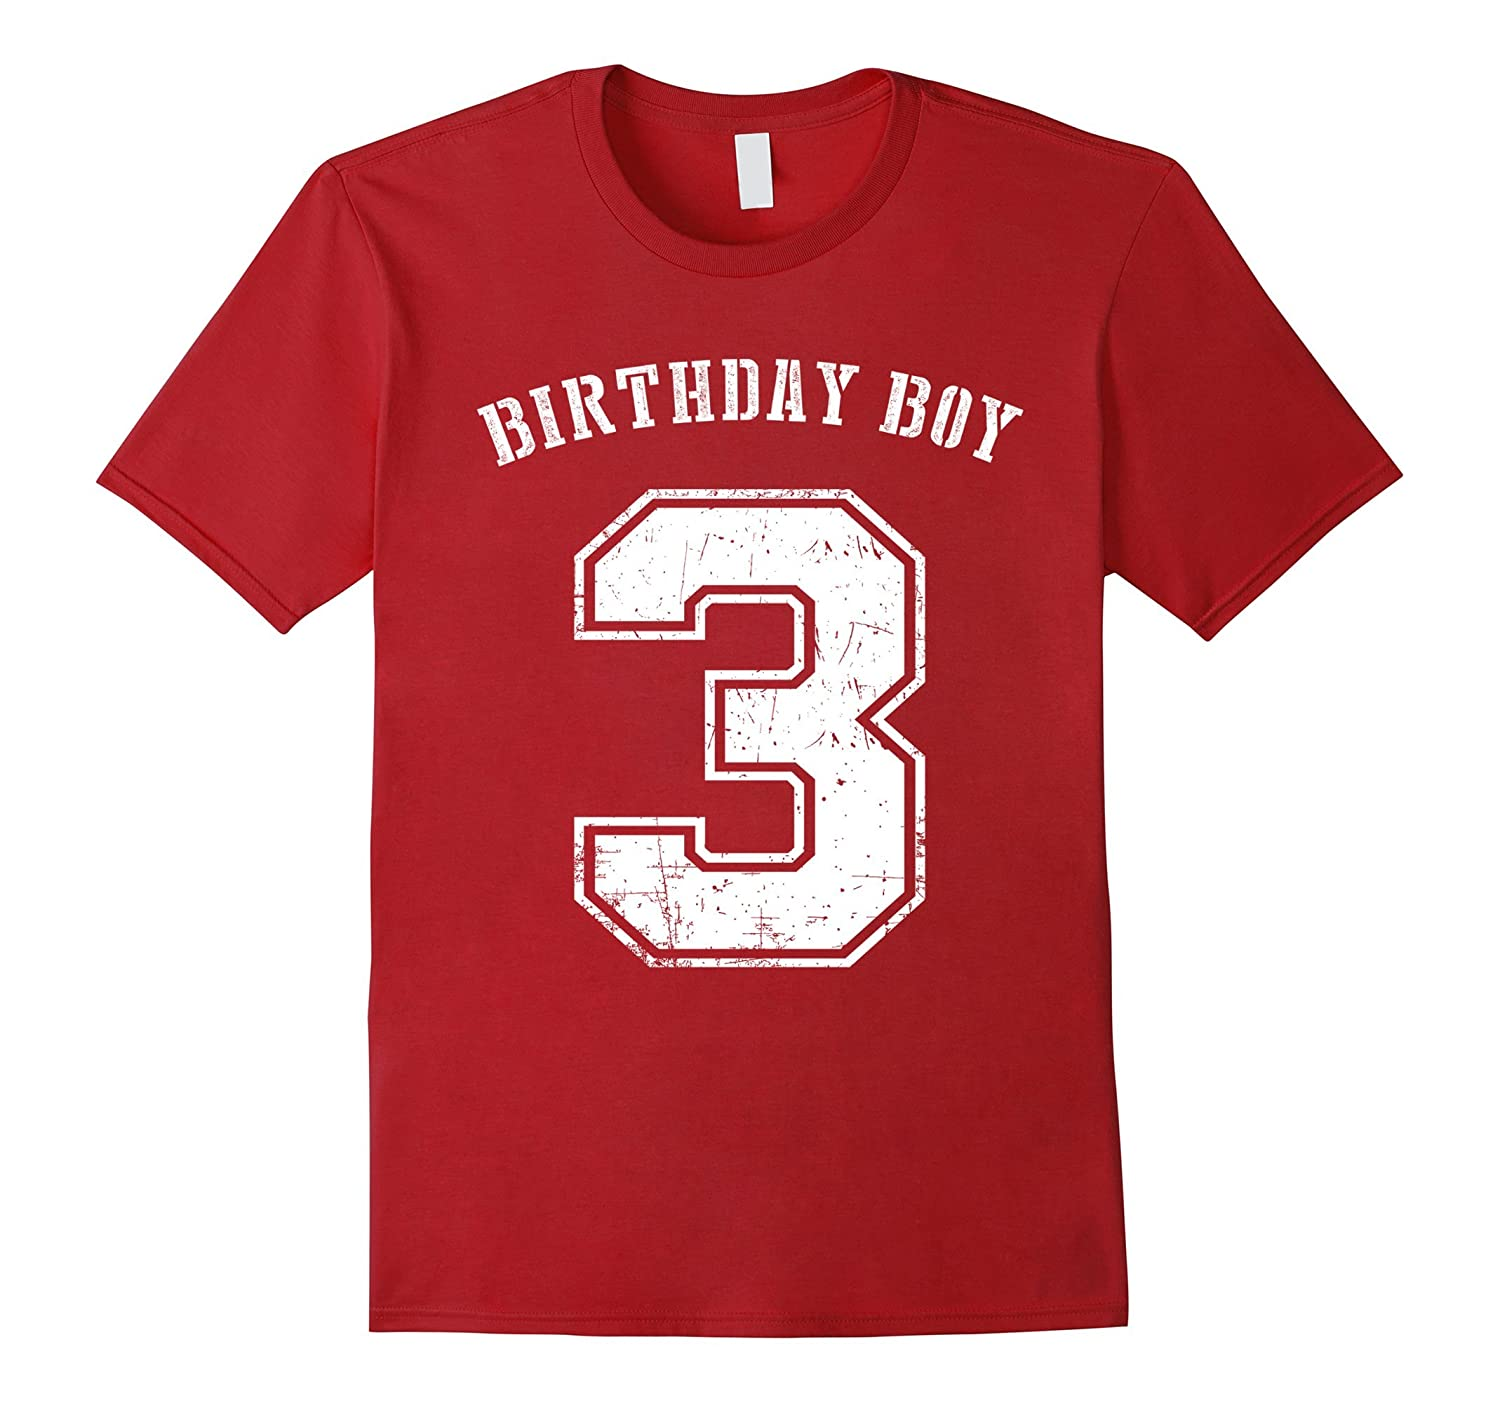 Birthday Boy 3rd Tshirt 3 Years Old For Kids CL